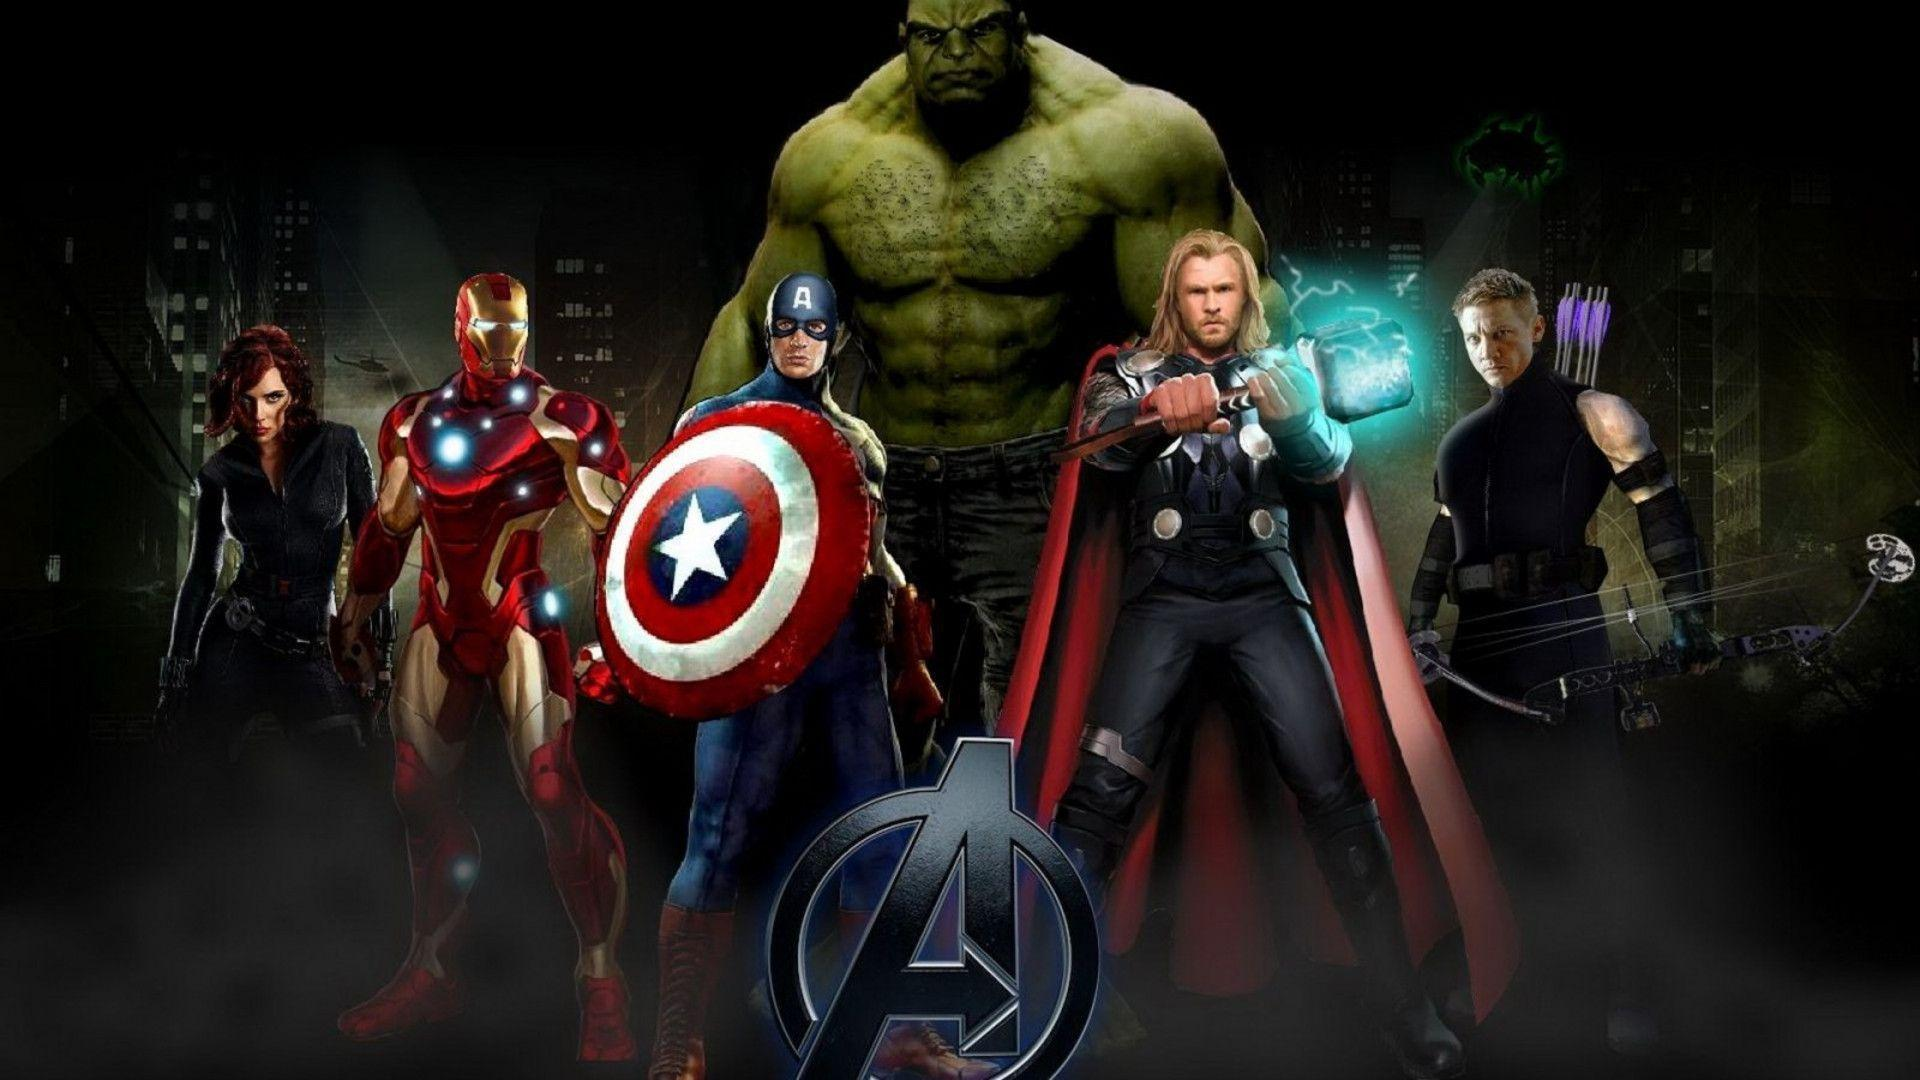 Avenger Wallpaper Photo Hd